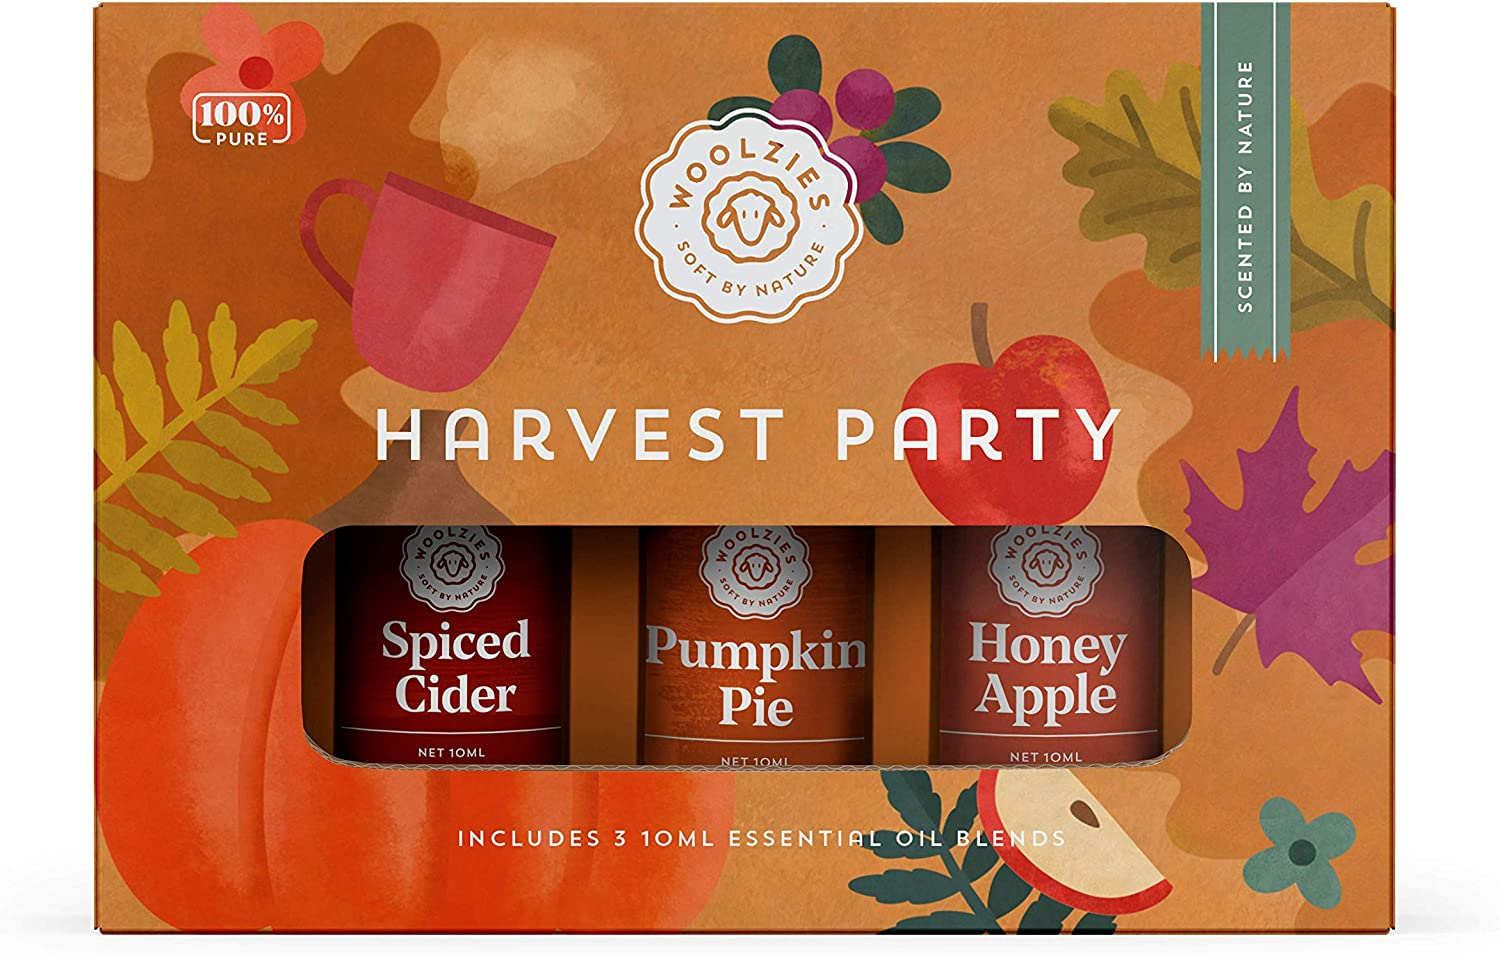 Woolzies Harvest Party Autumn Essential Oil Set of 3 Includes Spiced Cider, Pumpkin Pie, Honey Apple, Essentail Oil Blend